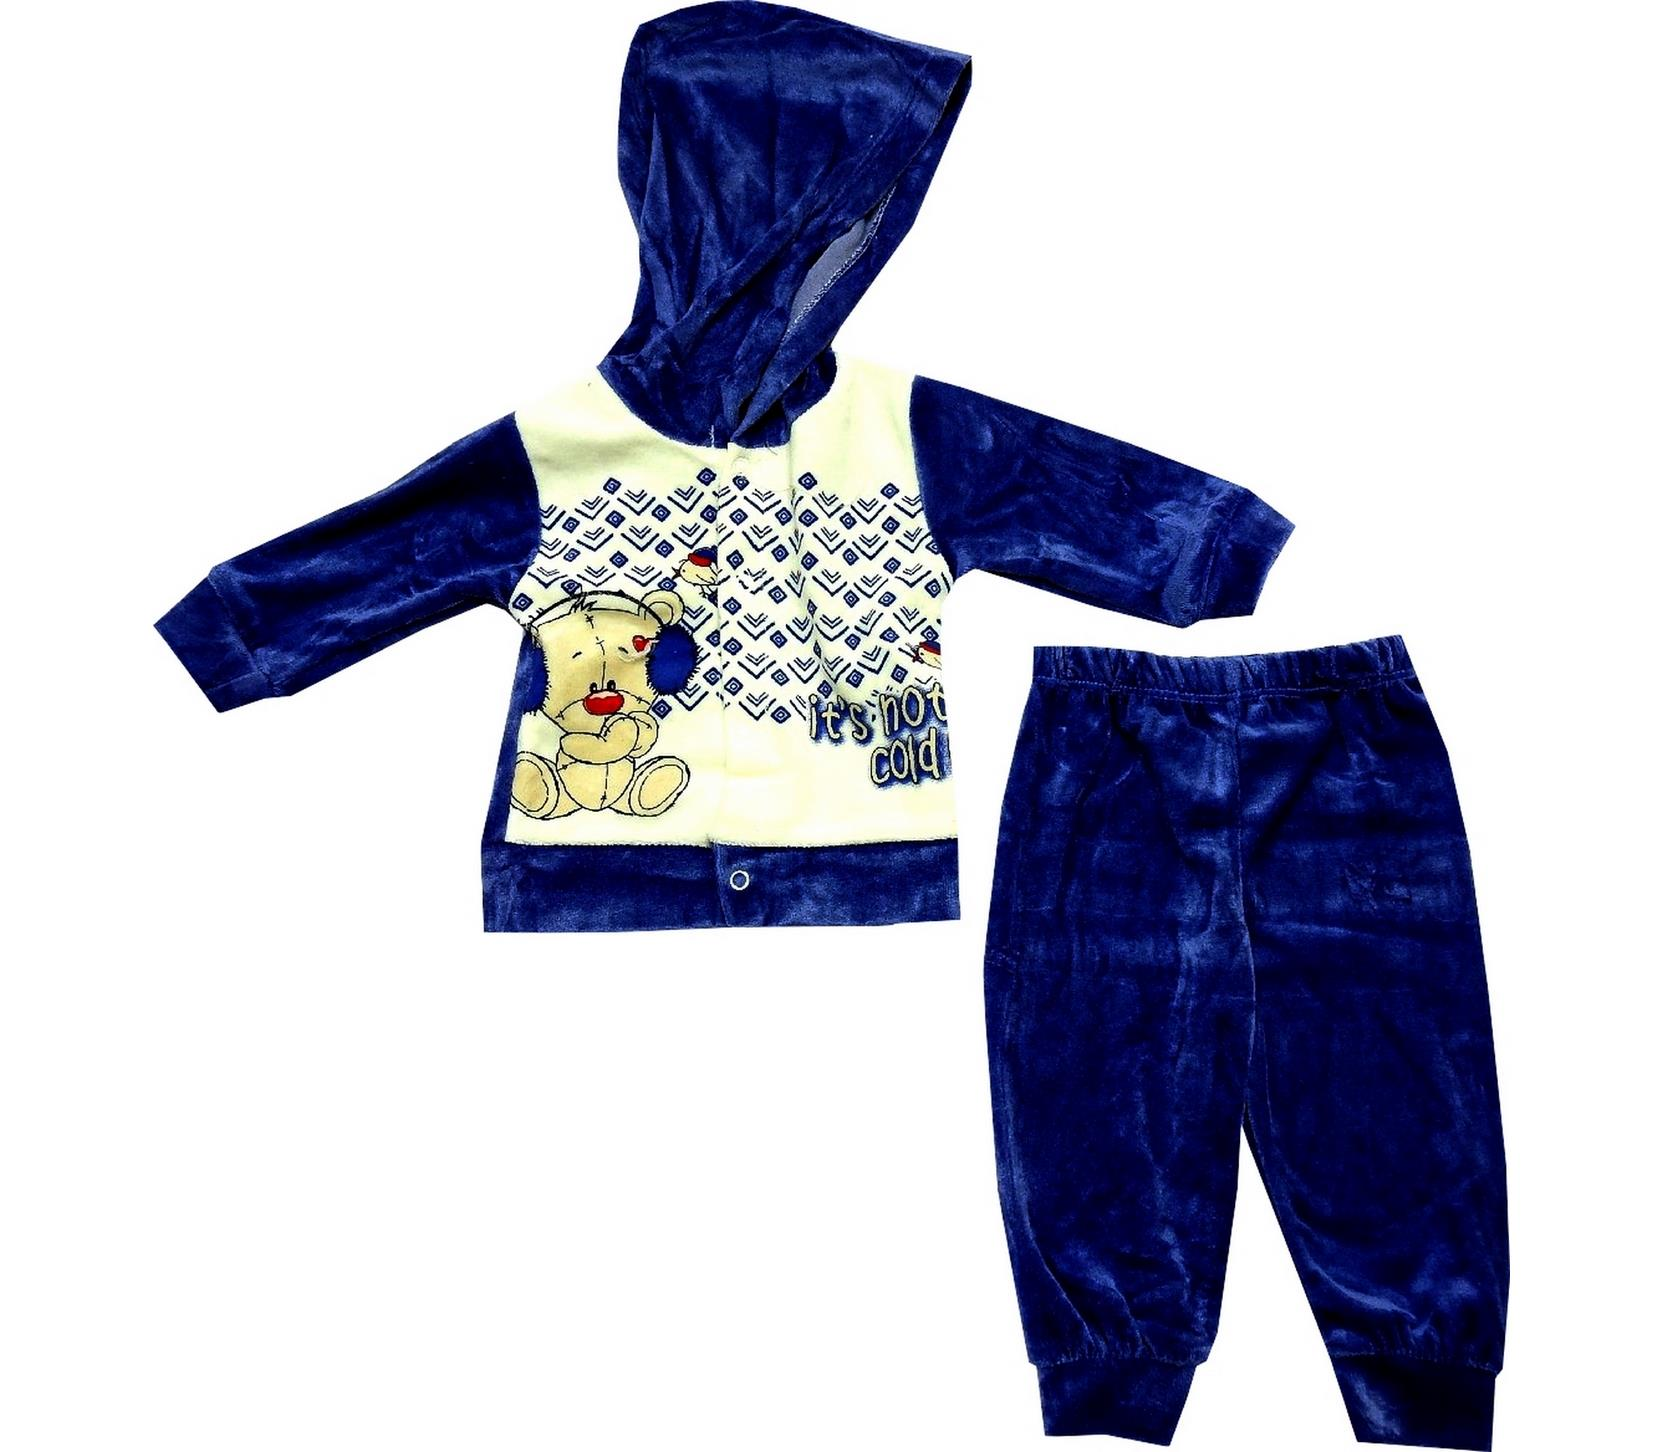 ASSORTED VELVET FABRIC PRINTED DESIGNED T-SHIRT AND TROUSER DOUBLE SET FOR BABY (3-6 MONTH)